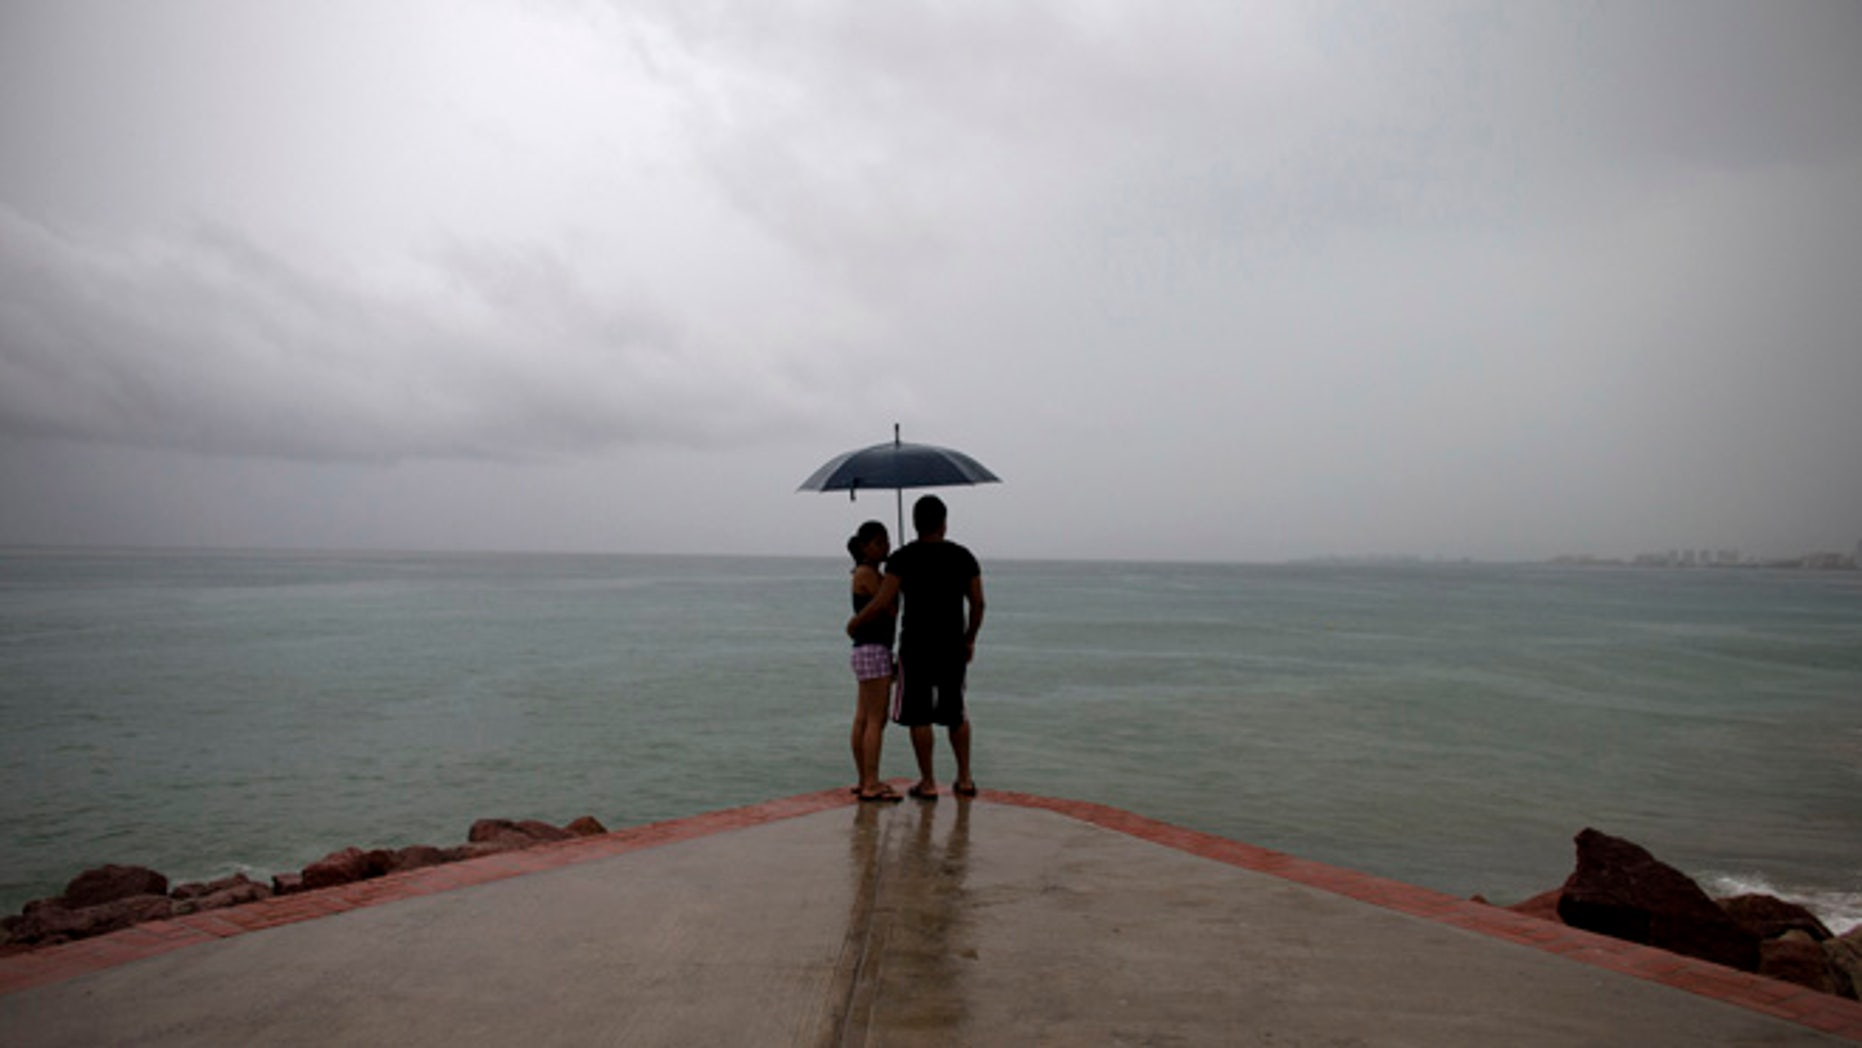 "FILE - In this Friday, Oct. 23, 2015, file photo, a couple looks out to sea as rainfall increases with the approach of Hurricane Patricia in Puerto Vallarta, Mexico. Mexico weathered a record eastern Pacific hurricane season with almost no deaths and relatively little damage, given the intensity of this year's storms. According to the U.S. National Oceanic and Atmospheric Administration's 2015 hurricane season report released Tuesday, Dec. 1, 2015, Patricia was ""the strongest hurricane on record in the Western Hemisphere"" just before it struck a sparsely populated stretch of Mexico's Pacific coast. (AP Photo/Rebecca Blackwell, File)"